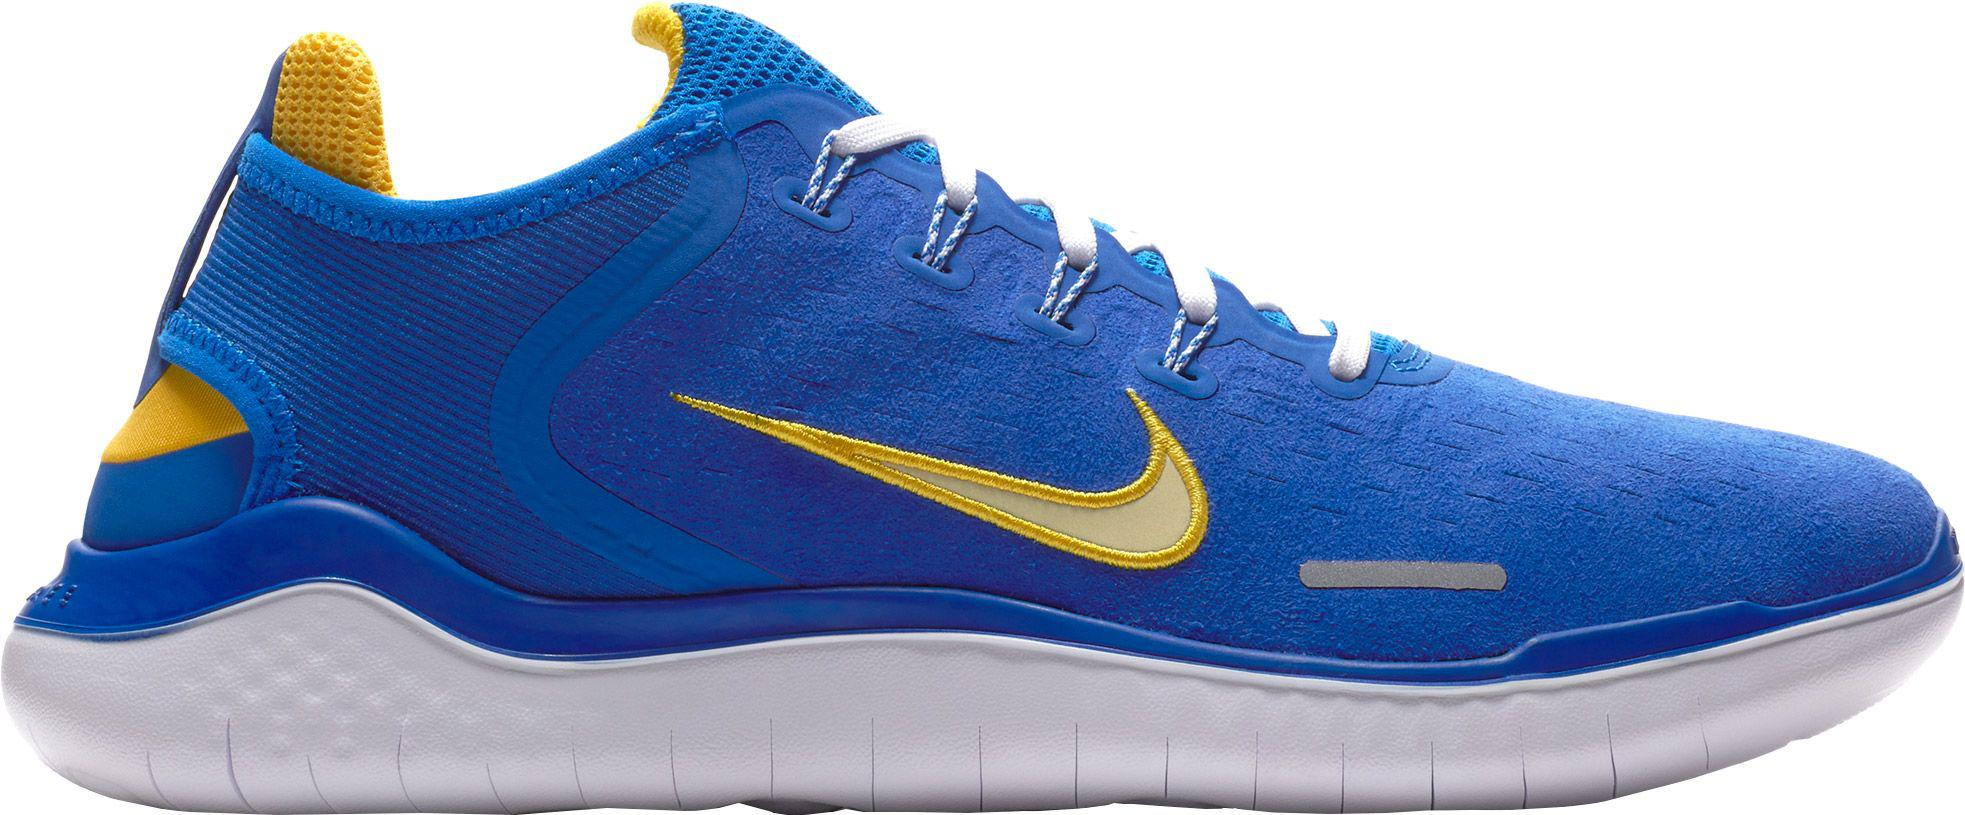 lowest price 303eb 398d9 ... norway lyst nike free rn 2018 hyper cobalt citron tint white mens b6b9a  6f3e7